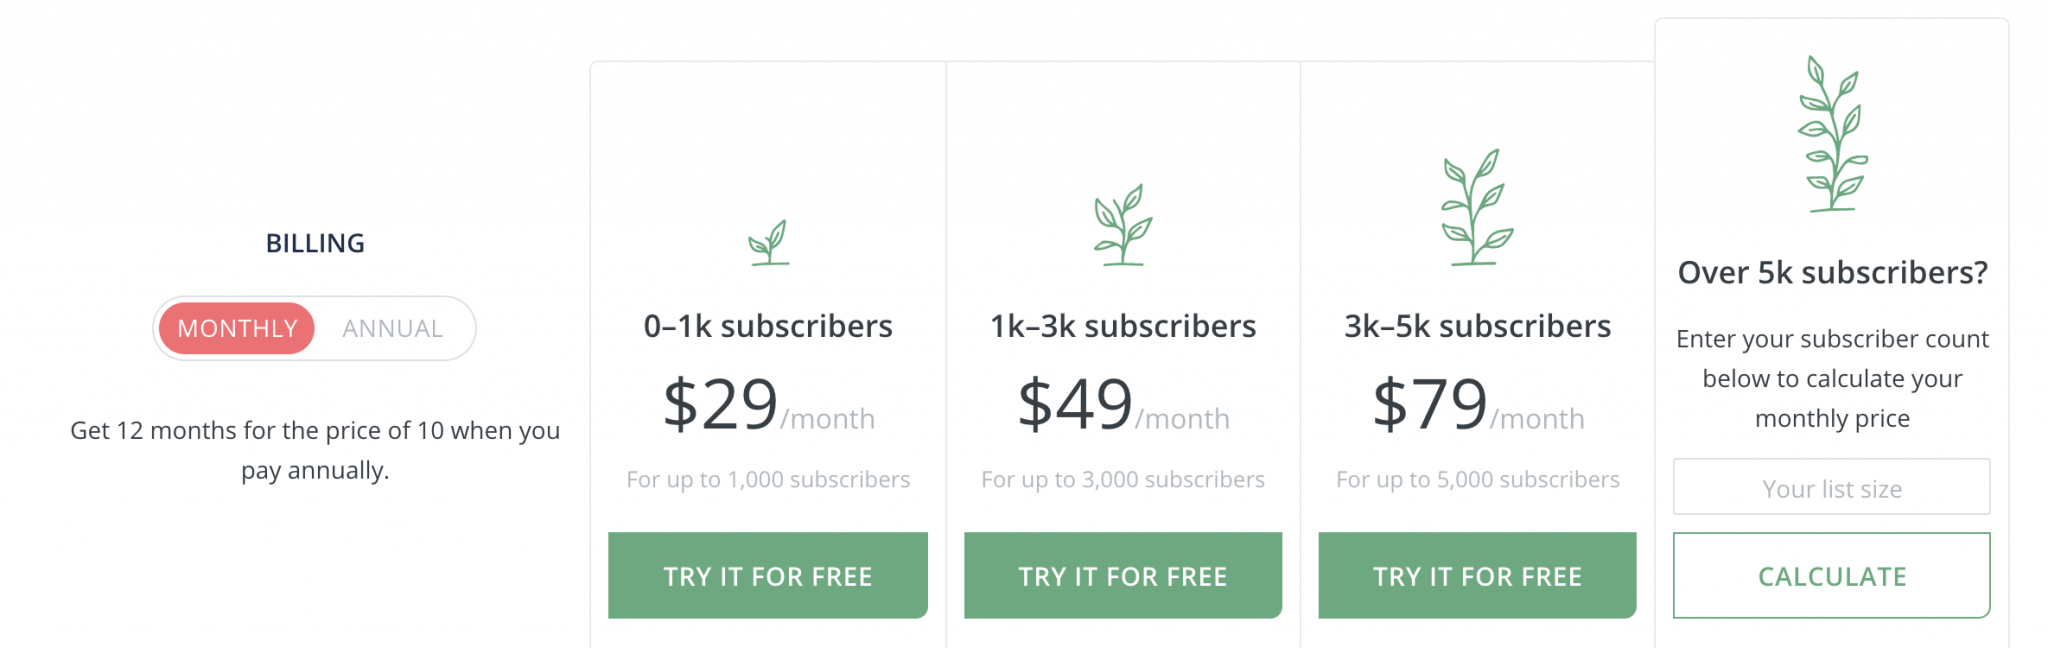 75 Percent Off Online Voucher Code Convertkit May 2020